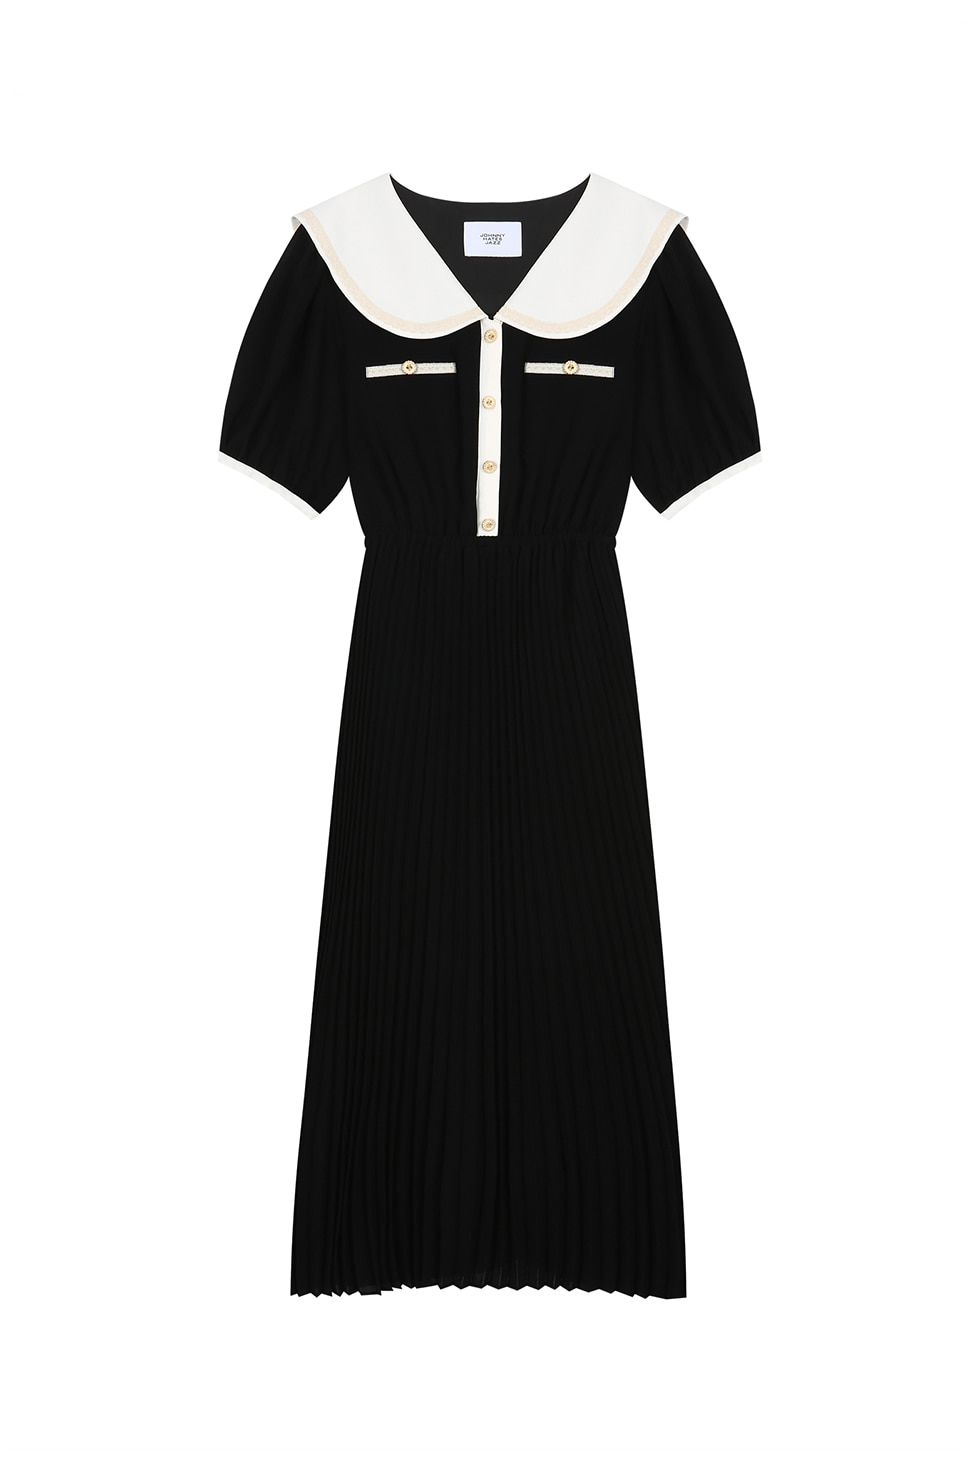 WIDE COLLAR CHIFFON DRESS - BLACK